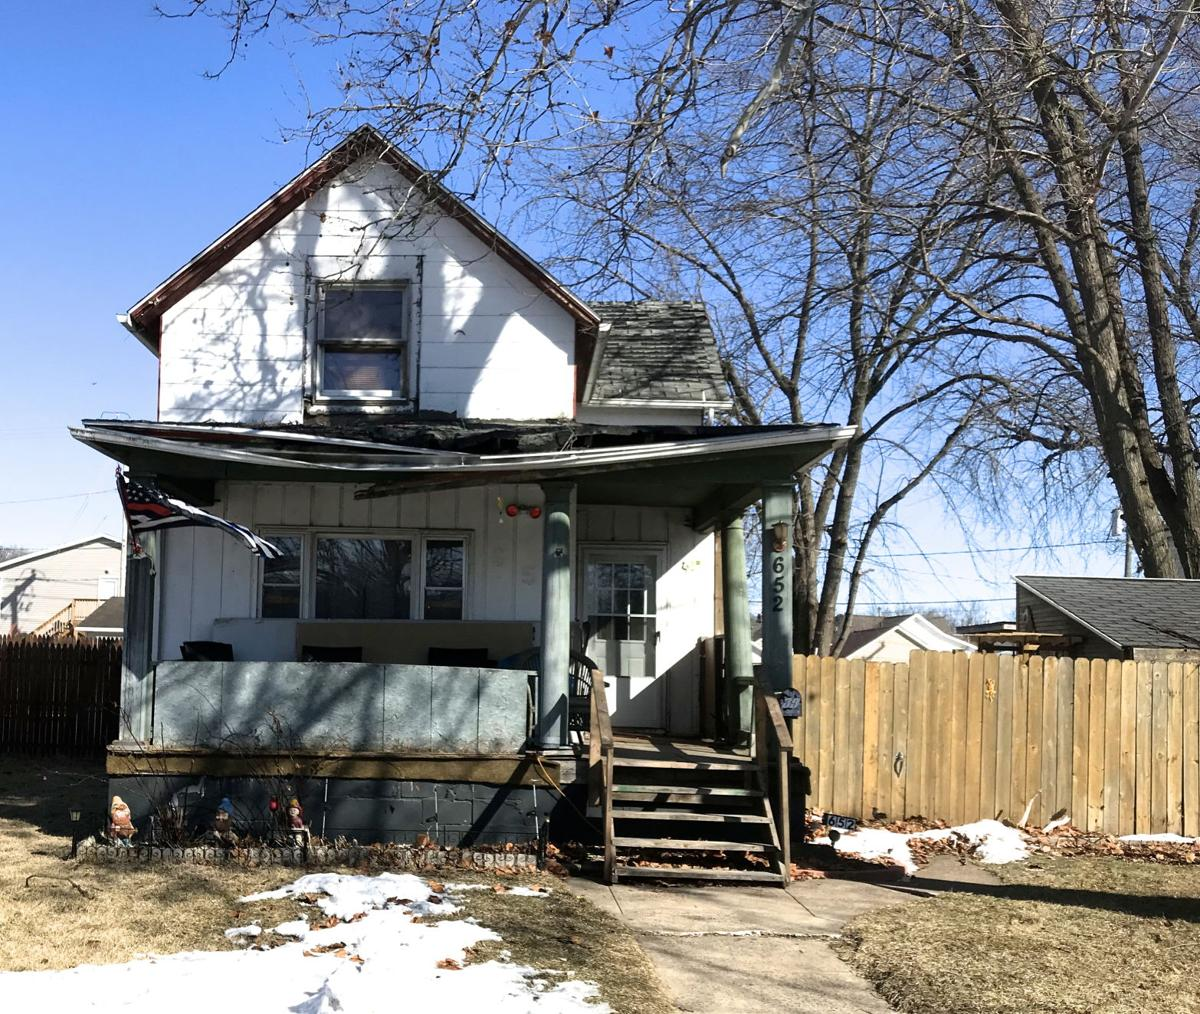 652 Fourth Ave. S. home, Lead and Healthy Homes grant